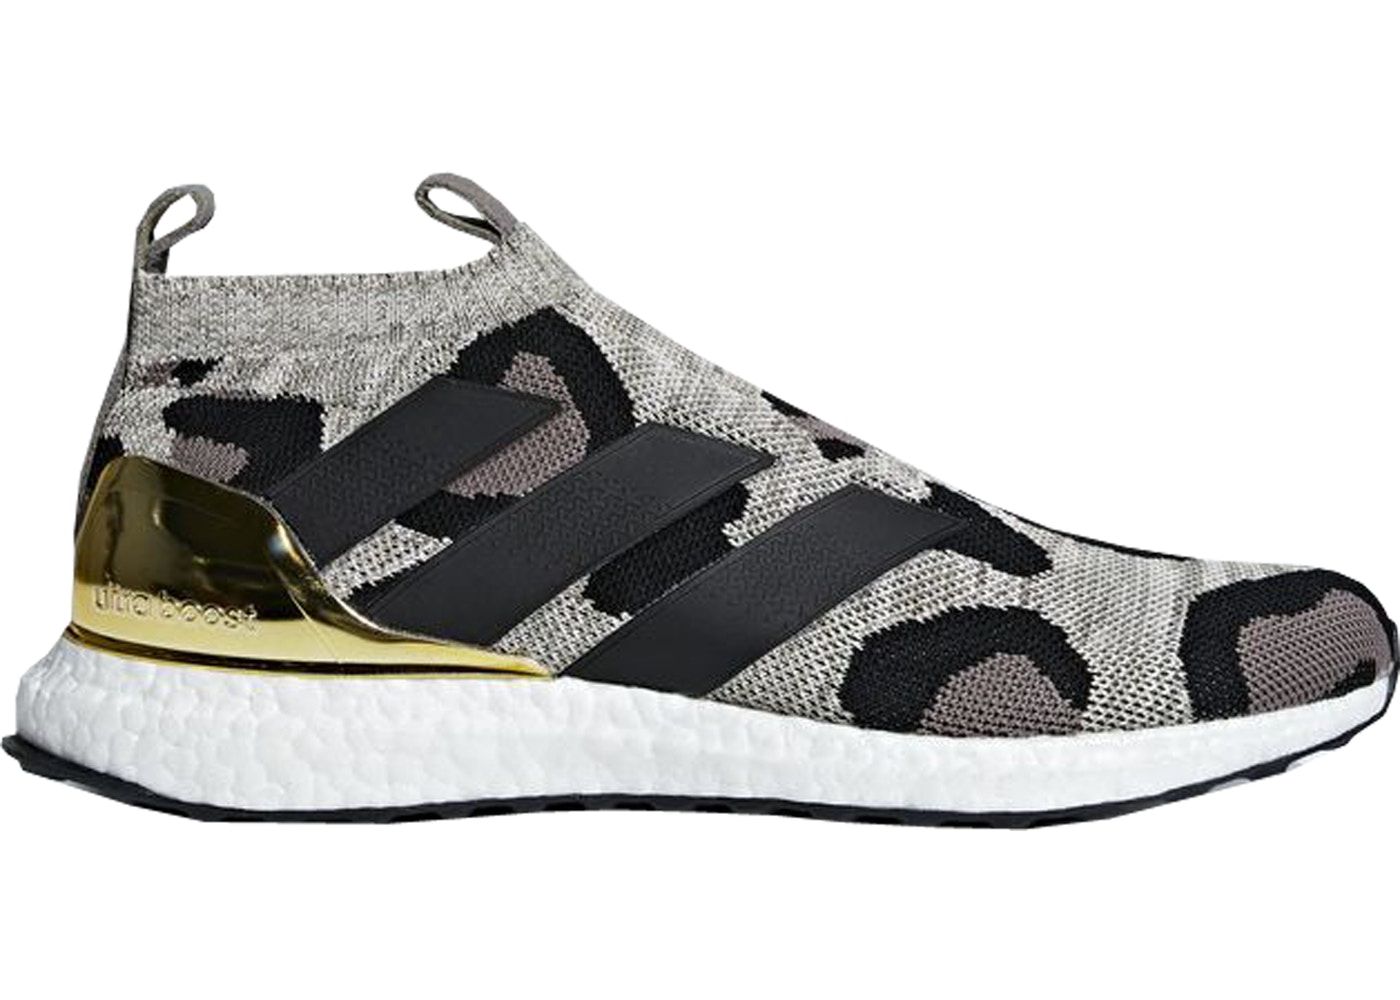 9611b7cfe33 Adidas Ace 16+ Ultraboost Animal Print